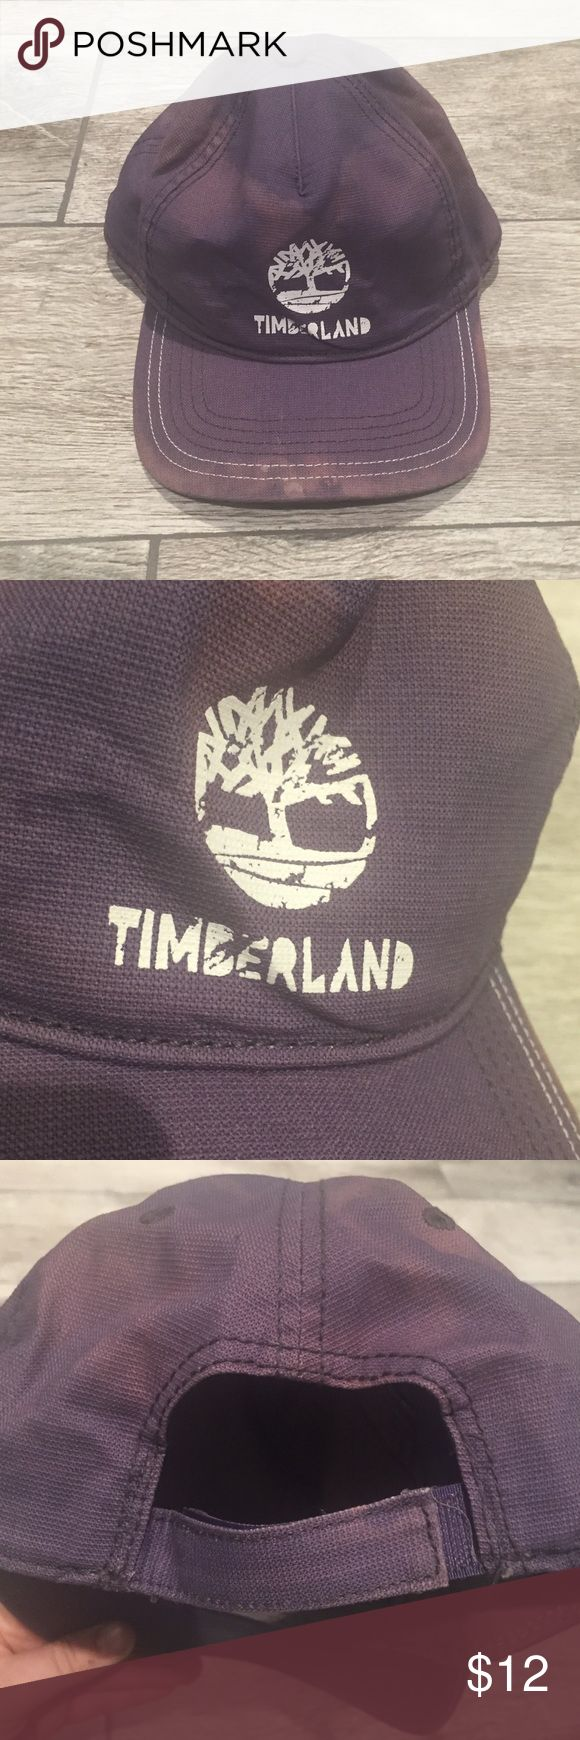 Timberland hat Velcro, tie dye, baseball style hat Timberland Accessories Hats